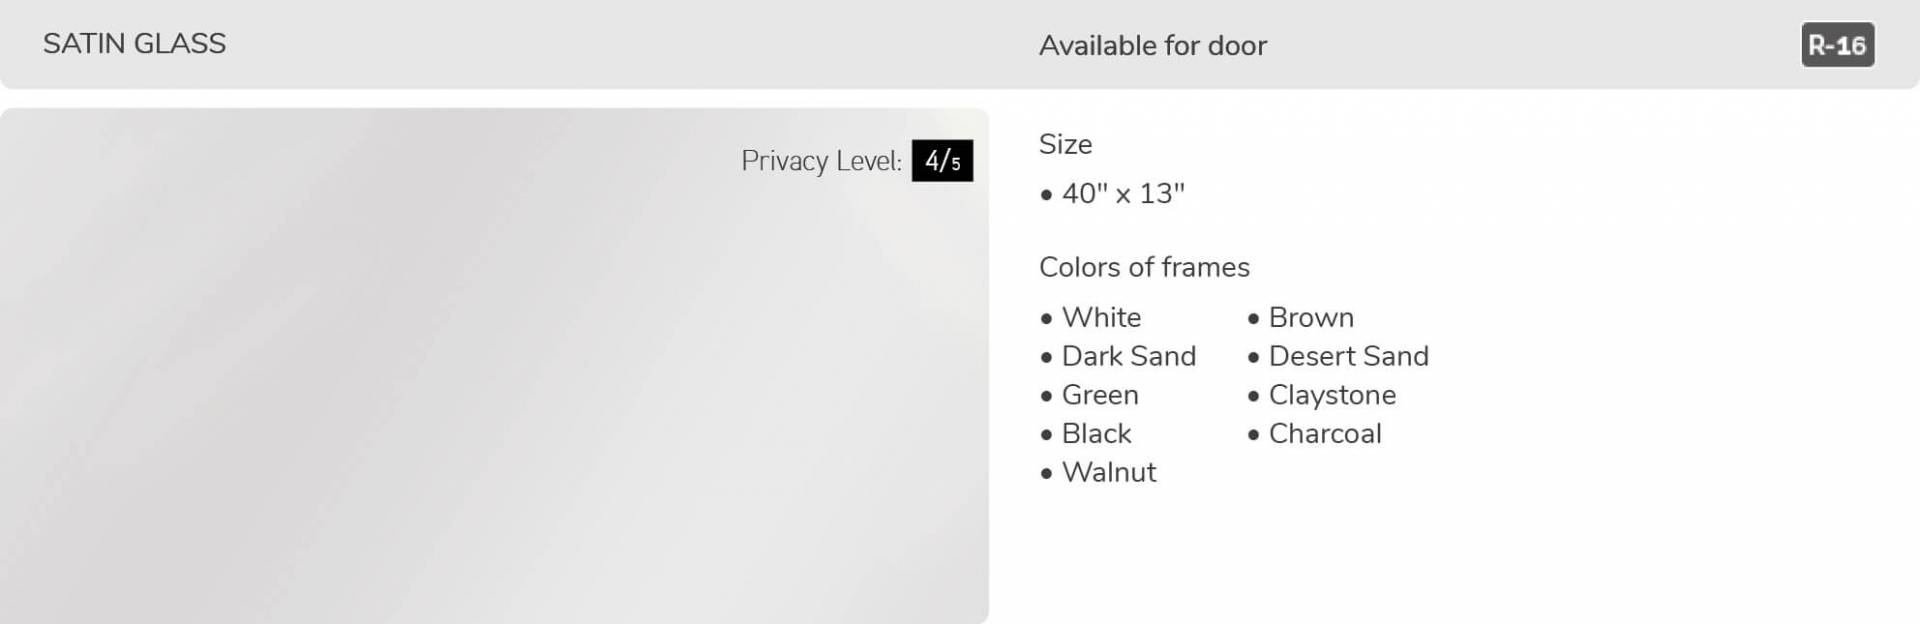 Satin glass, 40' x 13', available for door R-16